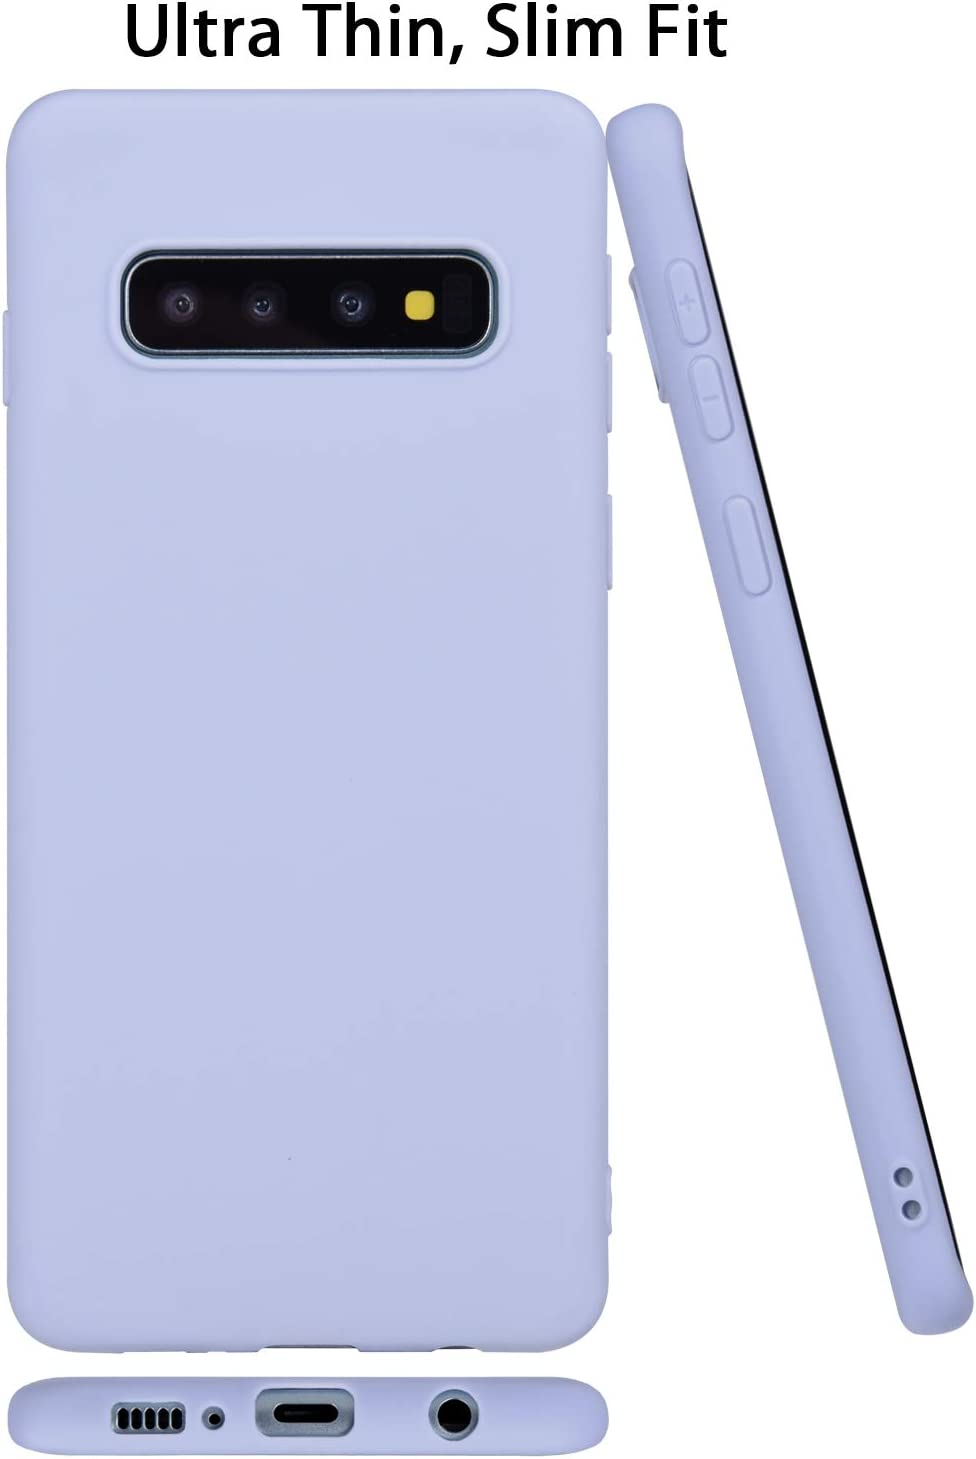 Galaxy S10 Case, Wisdompro Bundle of 5 Pack Extra Thin Slim Jelly Soft TPU Gel Protective Case Cover for Samsung Galaxy S10 (Green, Light Blue, Pink, Yellow, Red)-Candy Color